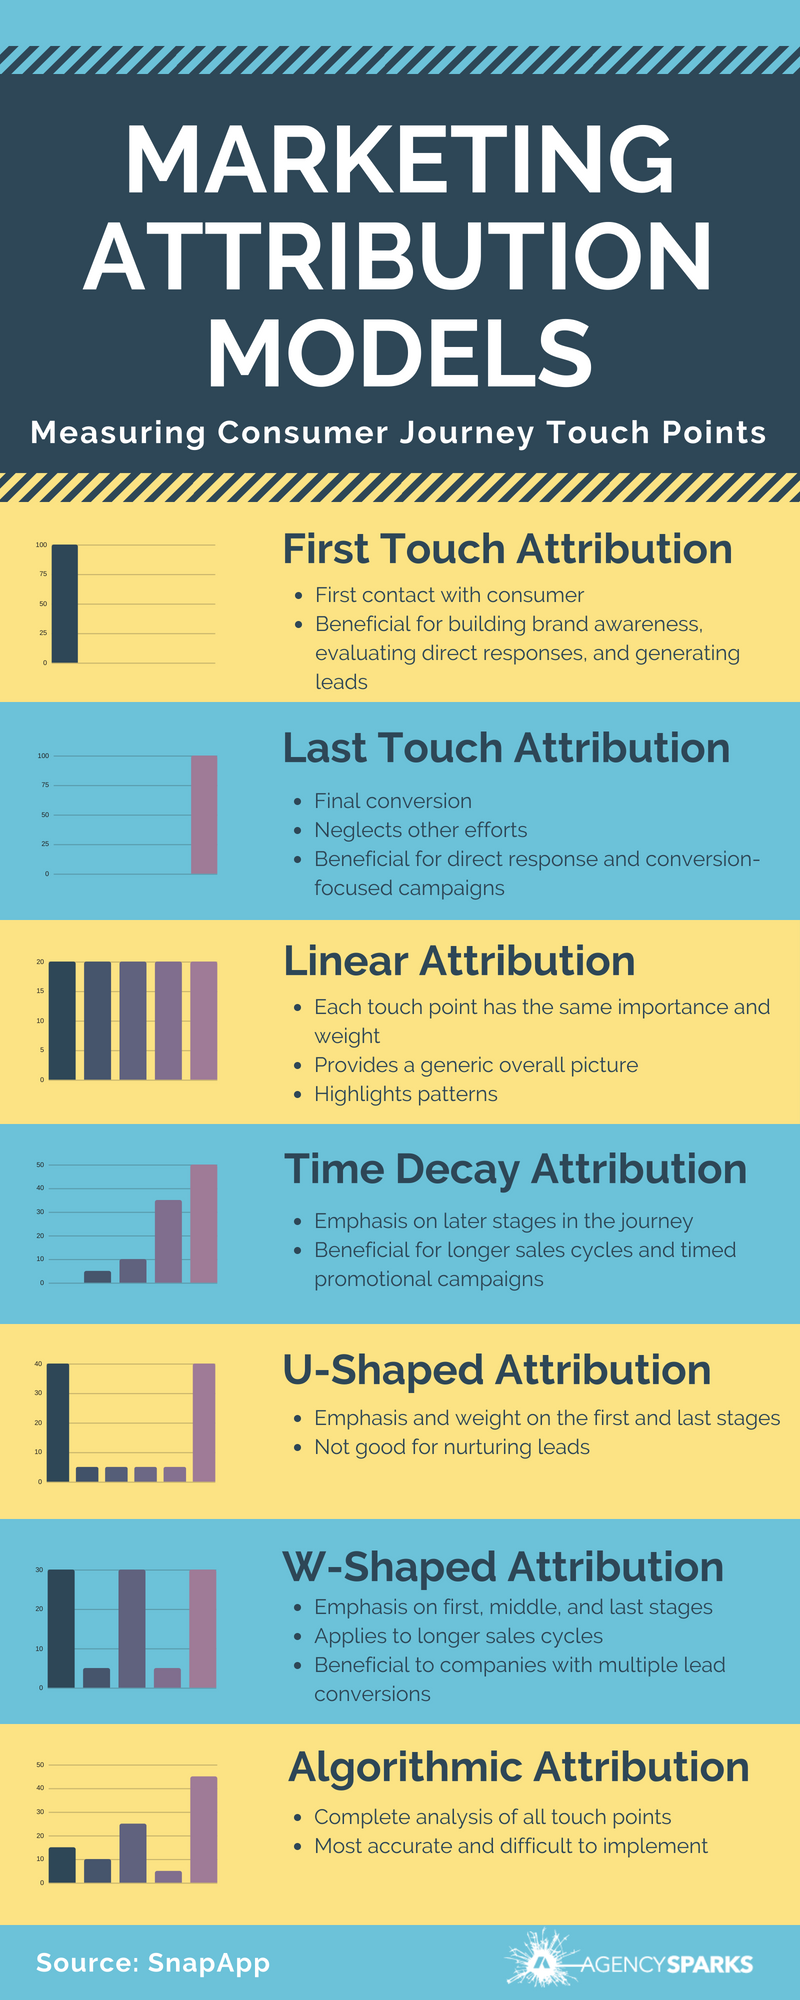 Marketing Attribution - Measuring Different Touch Points throughout the Customer Journey. Attribution models assign different weights to each touch point and customer conversion to determine the value of marketing efforts. Models include: First Touch, Last Touch, Linear, Time Decay, U-Shaped, W-Shaped, and Algorithmic Attribution.